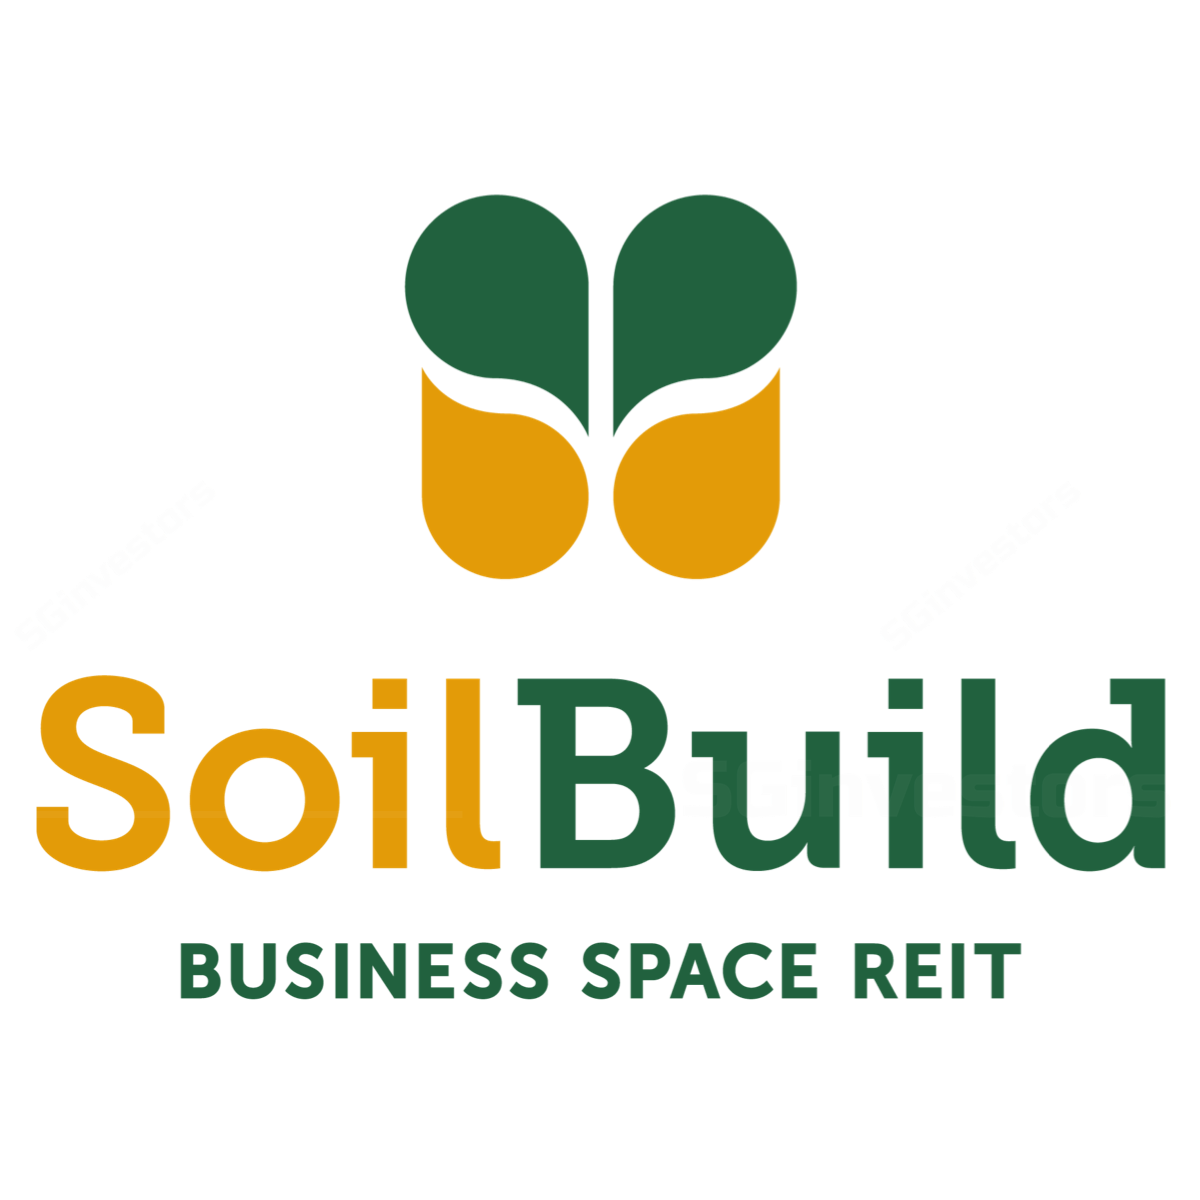 Soilbuild Business Space Reit - DBS Vickers 2018-01-19: Portfolio Reconstitution In Progress